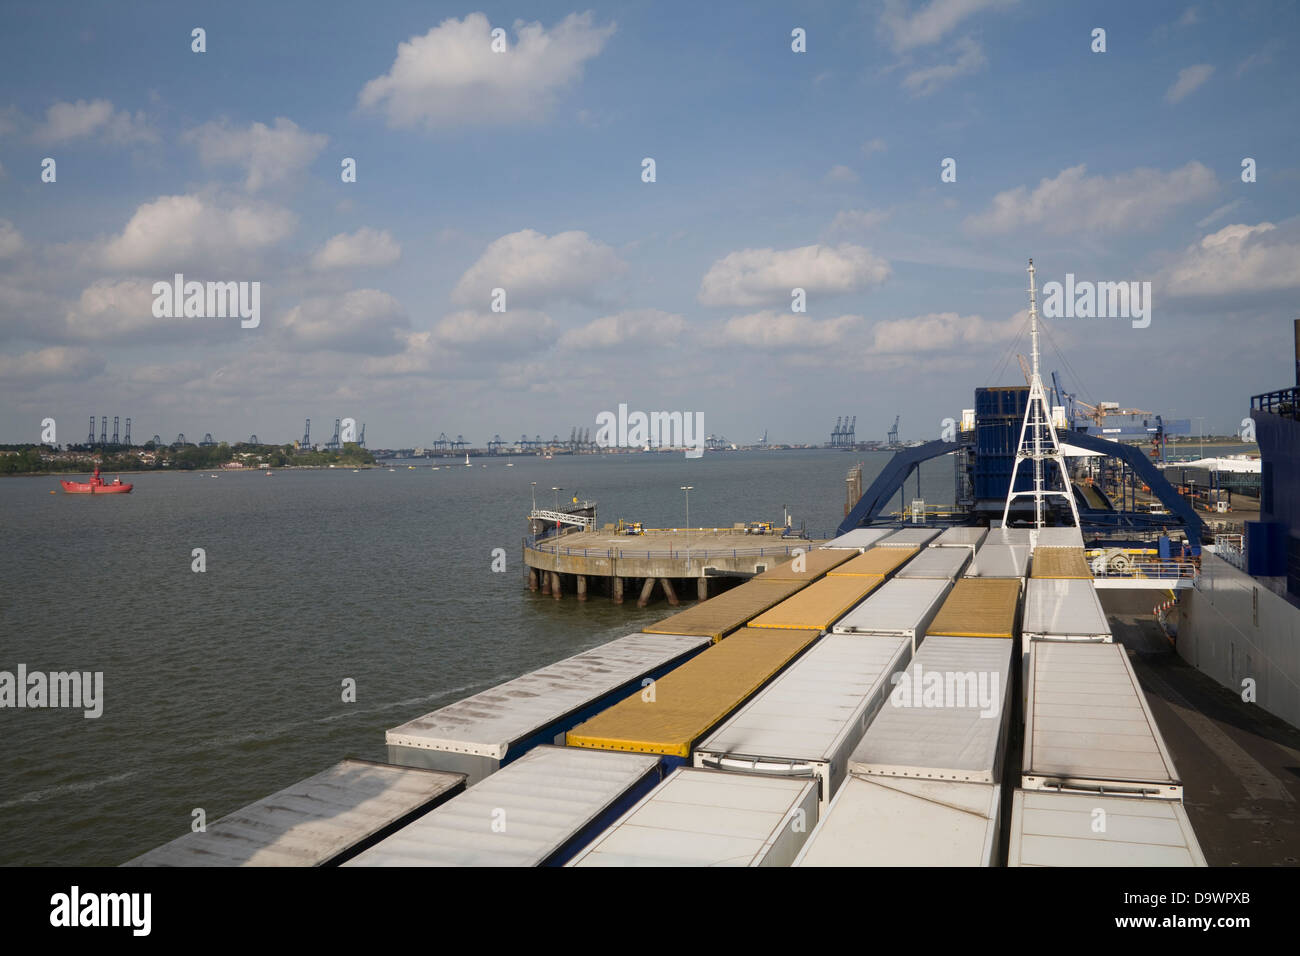 Harwich Essex South East England Looking down on lorries loaded on DFDS Sirena Seaways ferry to Denmark - Stock Image